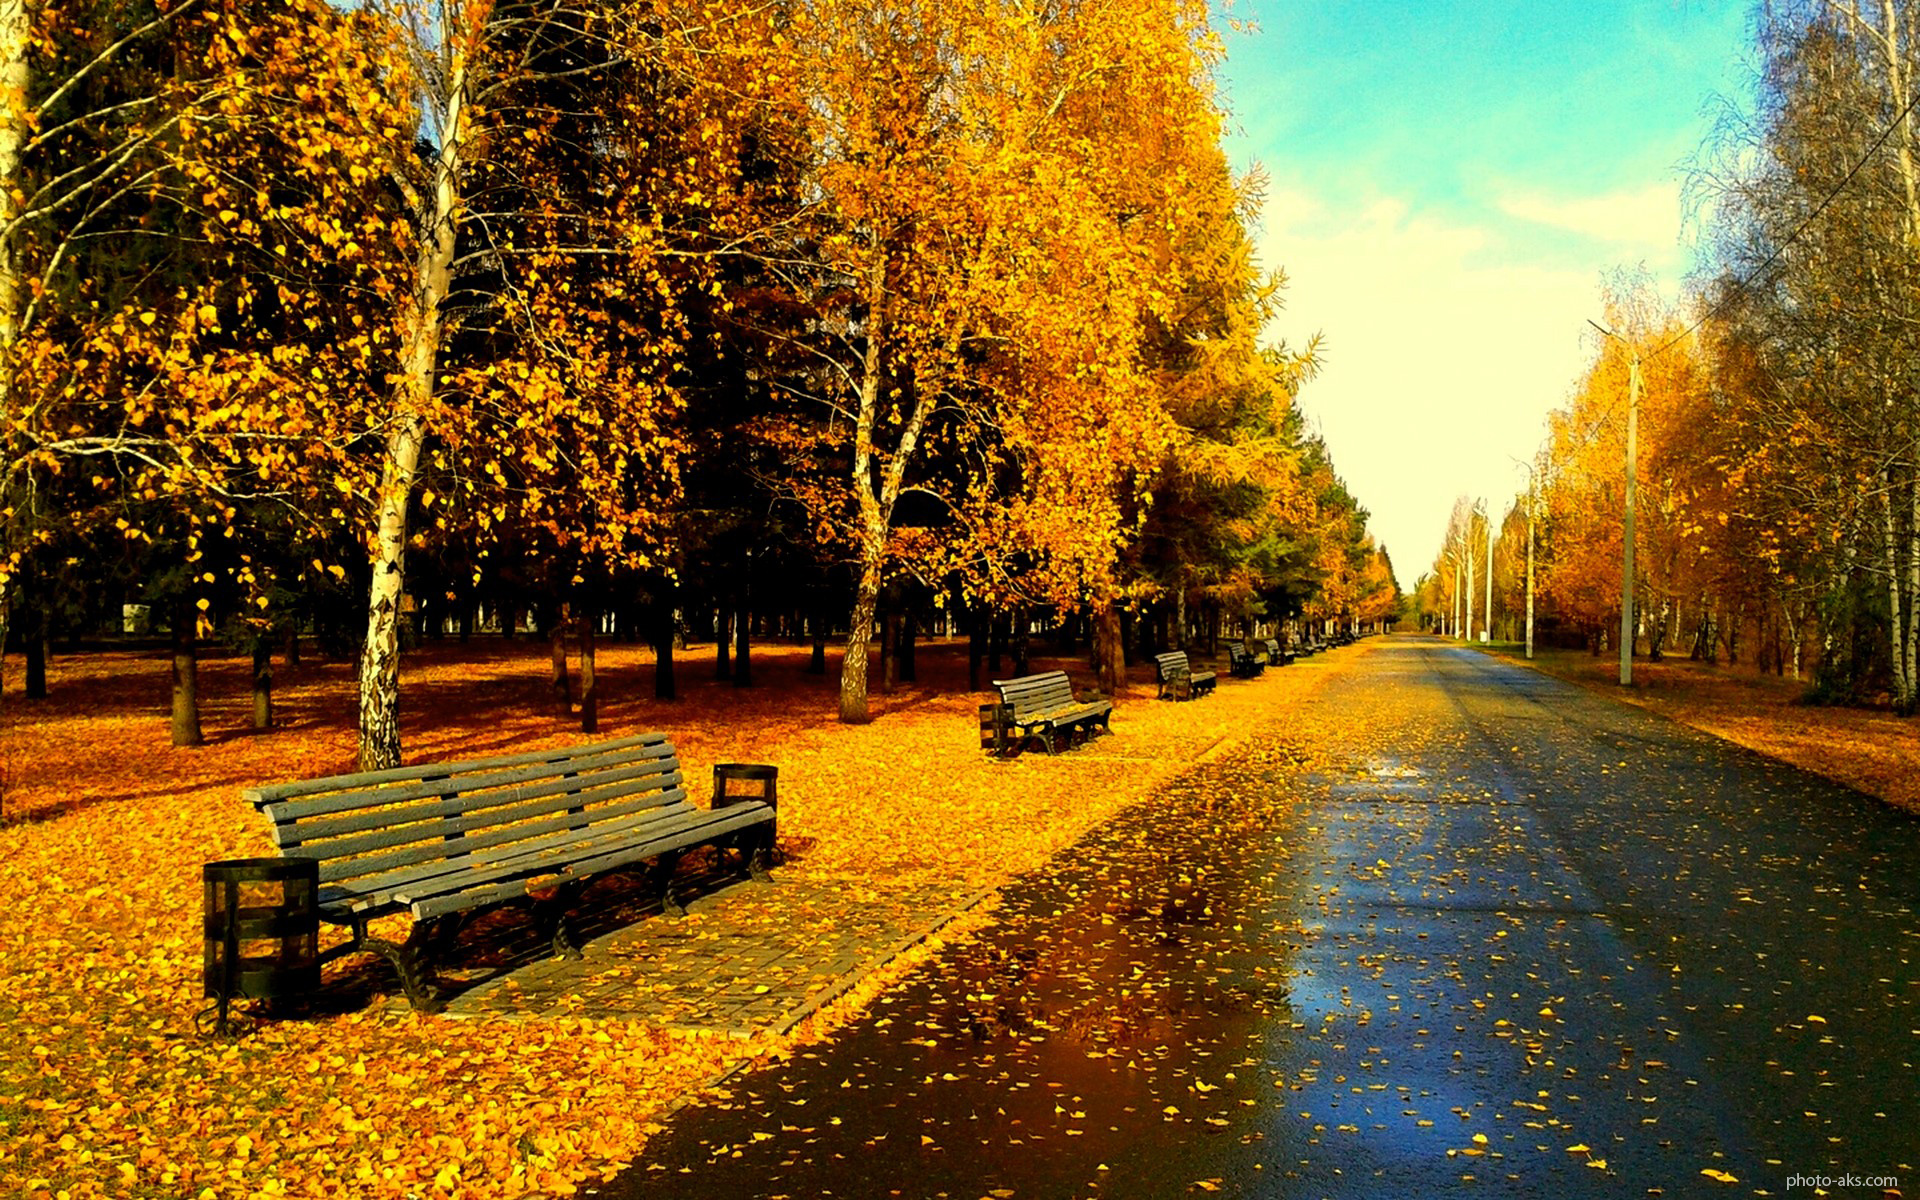 http://pic.photo-aks.com/photo/nature/season/autumn/large/park-after-rain-in_autumn.jpg